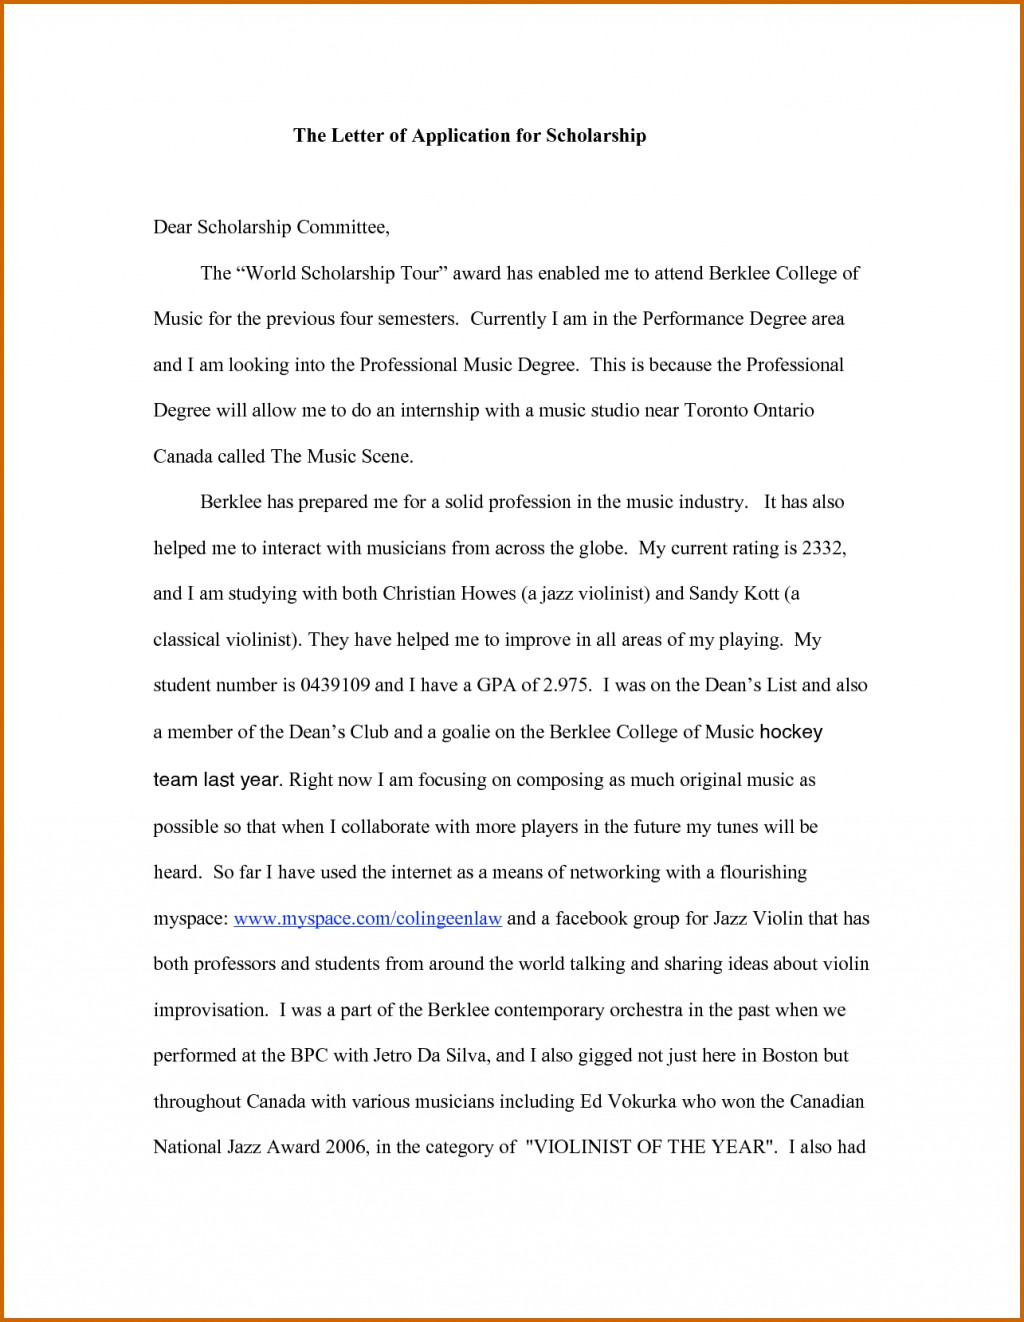 011 How To Write Application For Scholarship Essay Example Impressive A Good About Yourself Samples Study Abroad Large